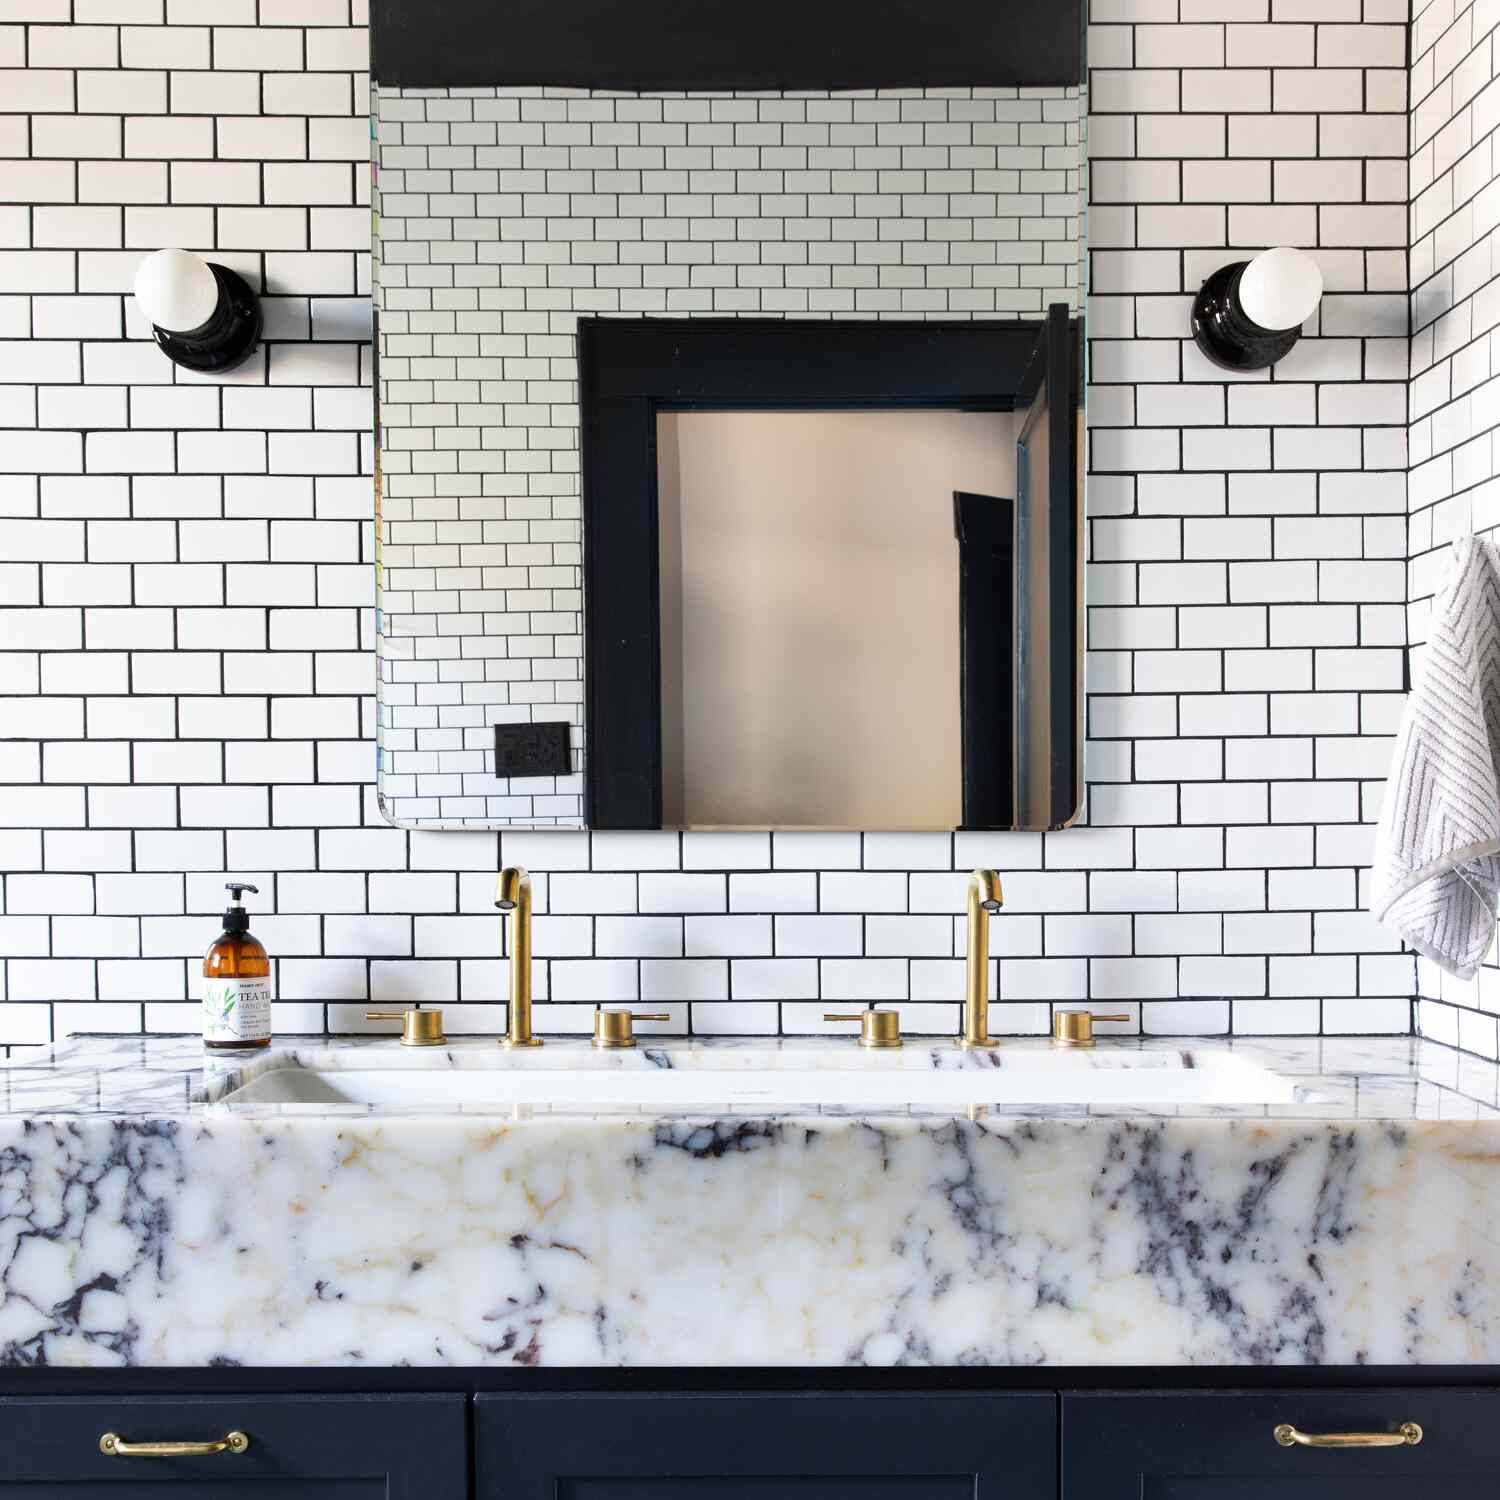 Blue, white, and yellow bathroom vanity with subway tile wall